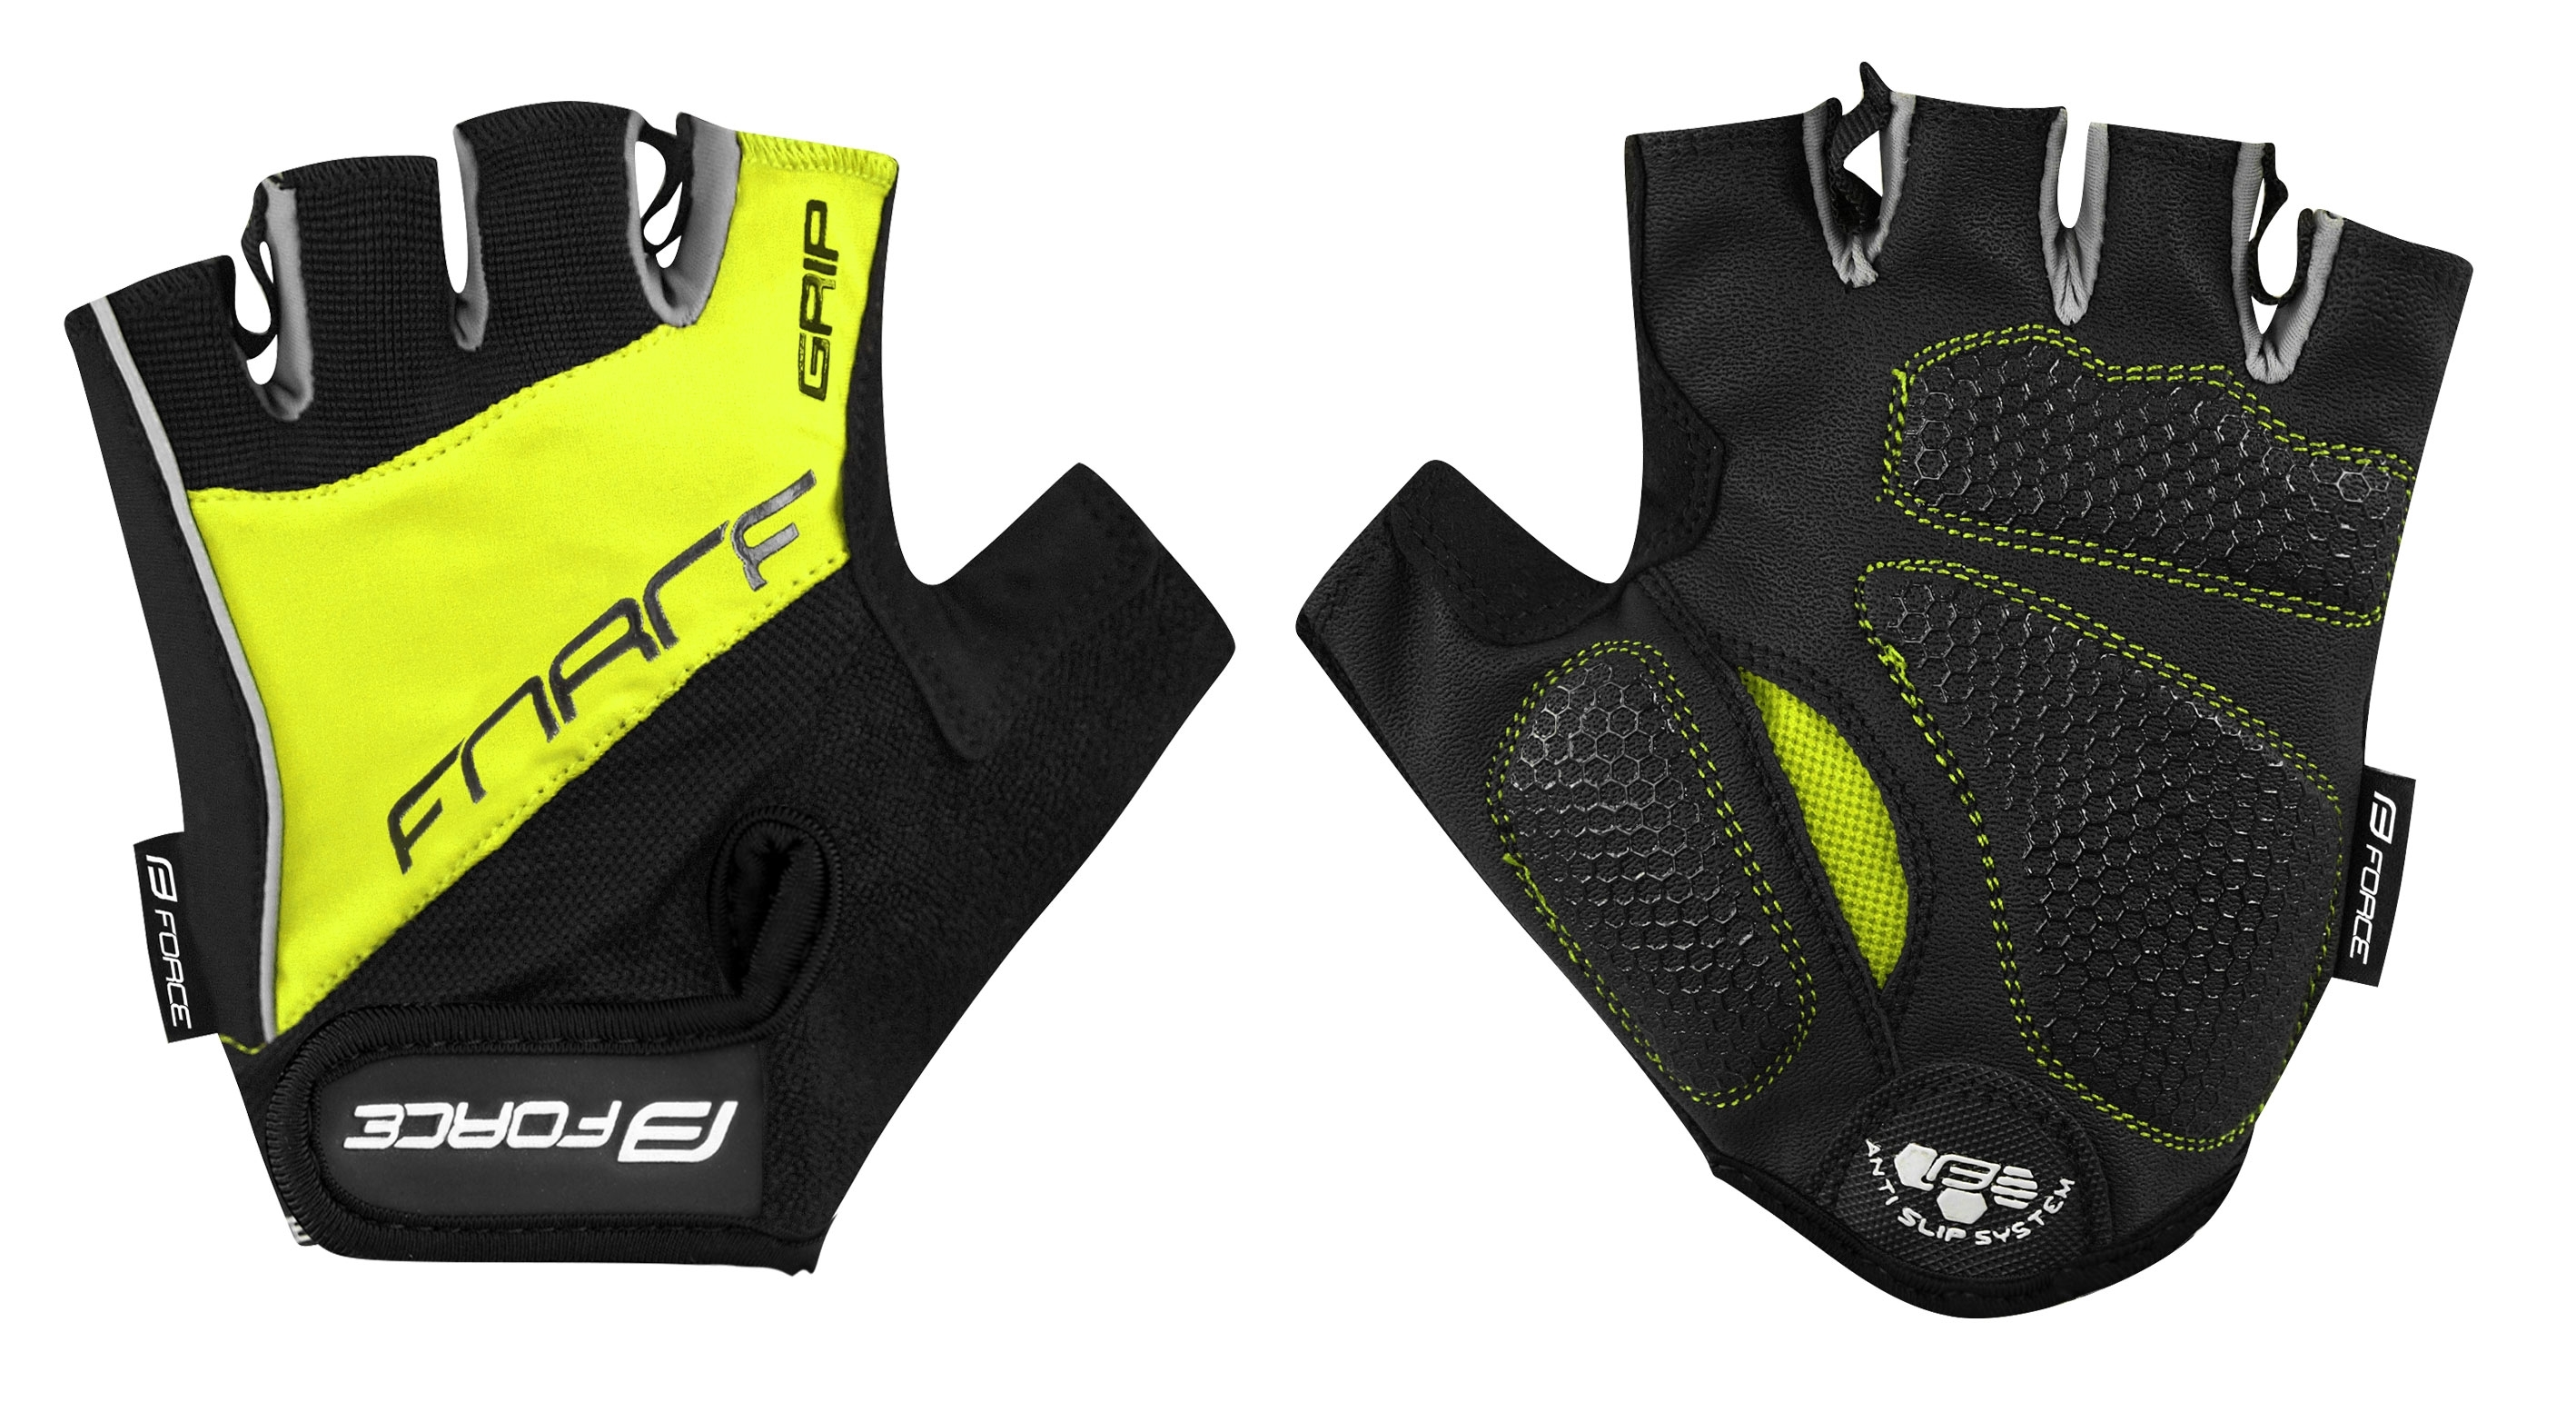 rukavice FORCE GRIP gel, fluo S